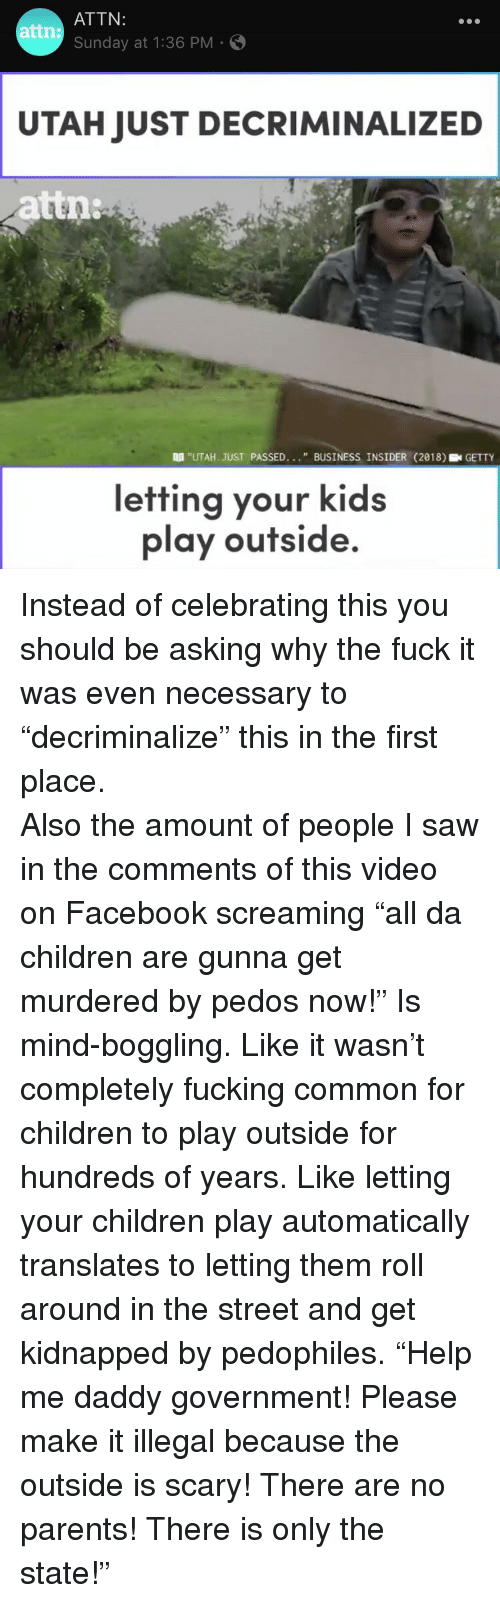 """Children, Facebook, and Fucking: ATTN:  Sunday at 1:36 PM  attn:  UTAH JUST DECRIMINALIZED  attn  """"UTAH. JUST PASSED... """" BUSINESS INSIDER (218GETTY  efting your kids  play outside. <p>Instead of celebrating this you should be asking why the fuck it was even necessary to """"decriminalize"""" this in the first place.</p>  <p>Also the amount of people I saw in the comments of this video on Facebook screaming """"all da children are gunna get murdered by pedos now!"""" Is mind-boggling. Like it wasn't completely fucking common for children to play outside for hundreds of years. Like letting your children play automatically translates to letting them roll around in the street and get kidnapped by pedophiles. """"Help me daddy government! Please make it illegal because the outside is scary! There are no parents! There is only the state!""""</p>"""